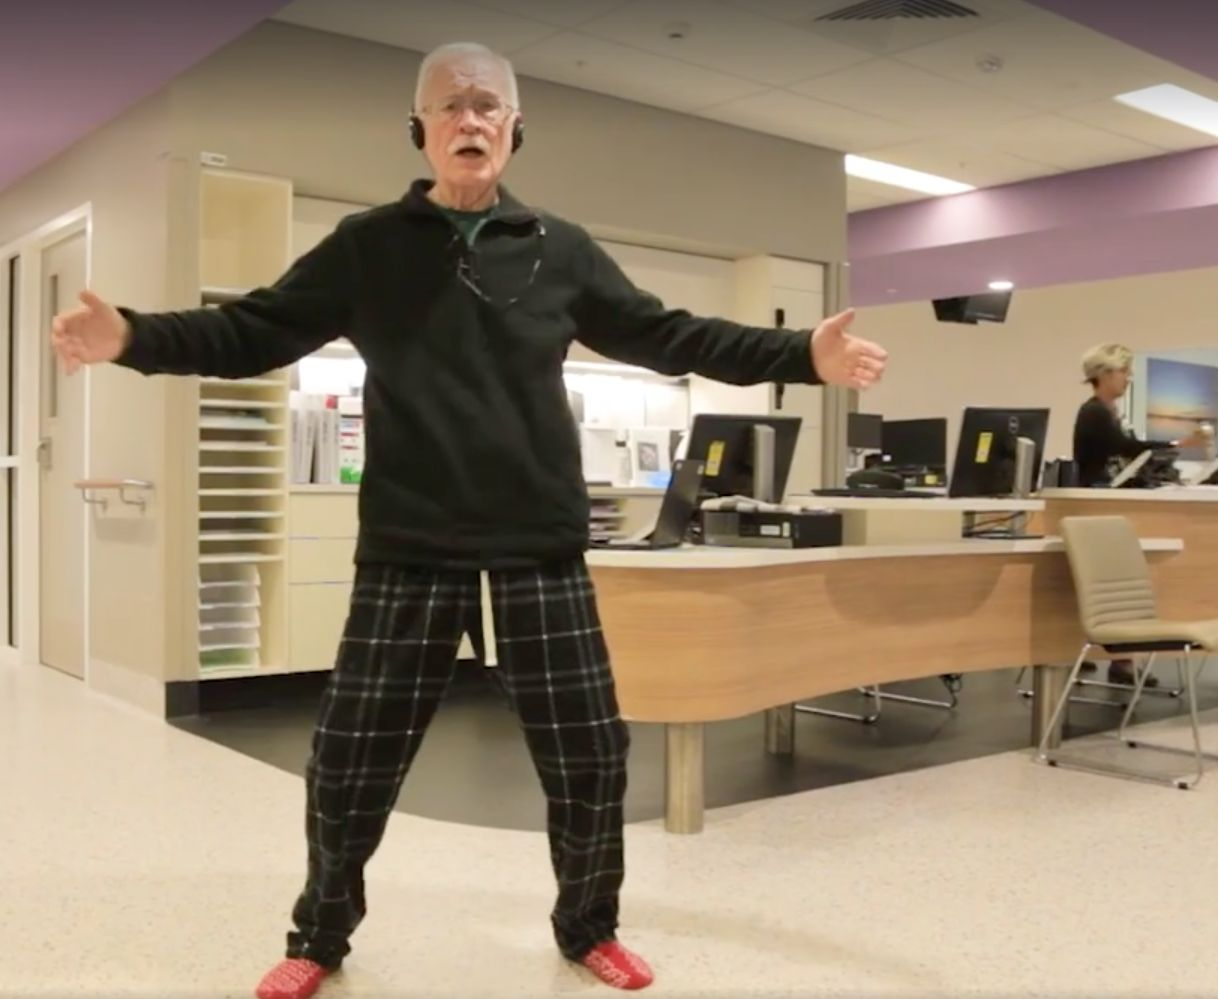 'Agitated' 78-Year-Old With Dementia Can't Stop Bopping When Elvis Presley